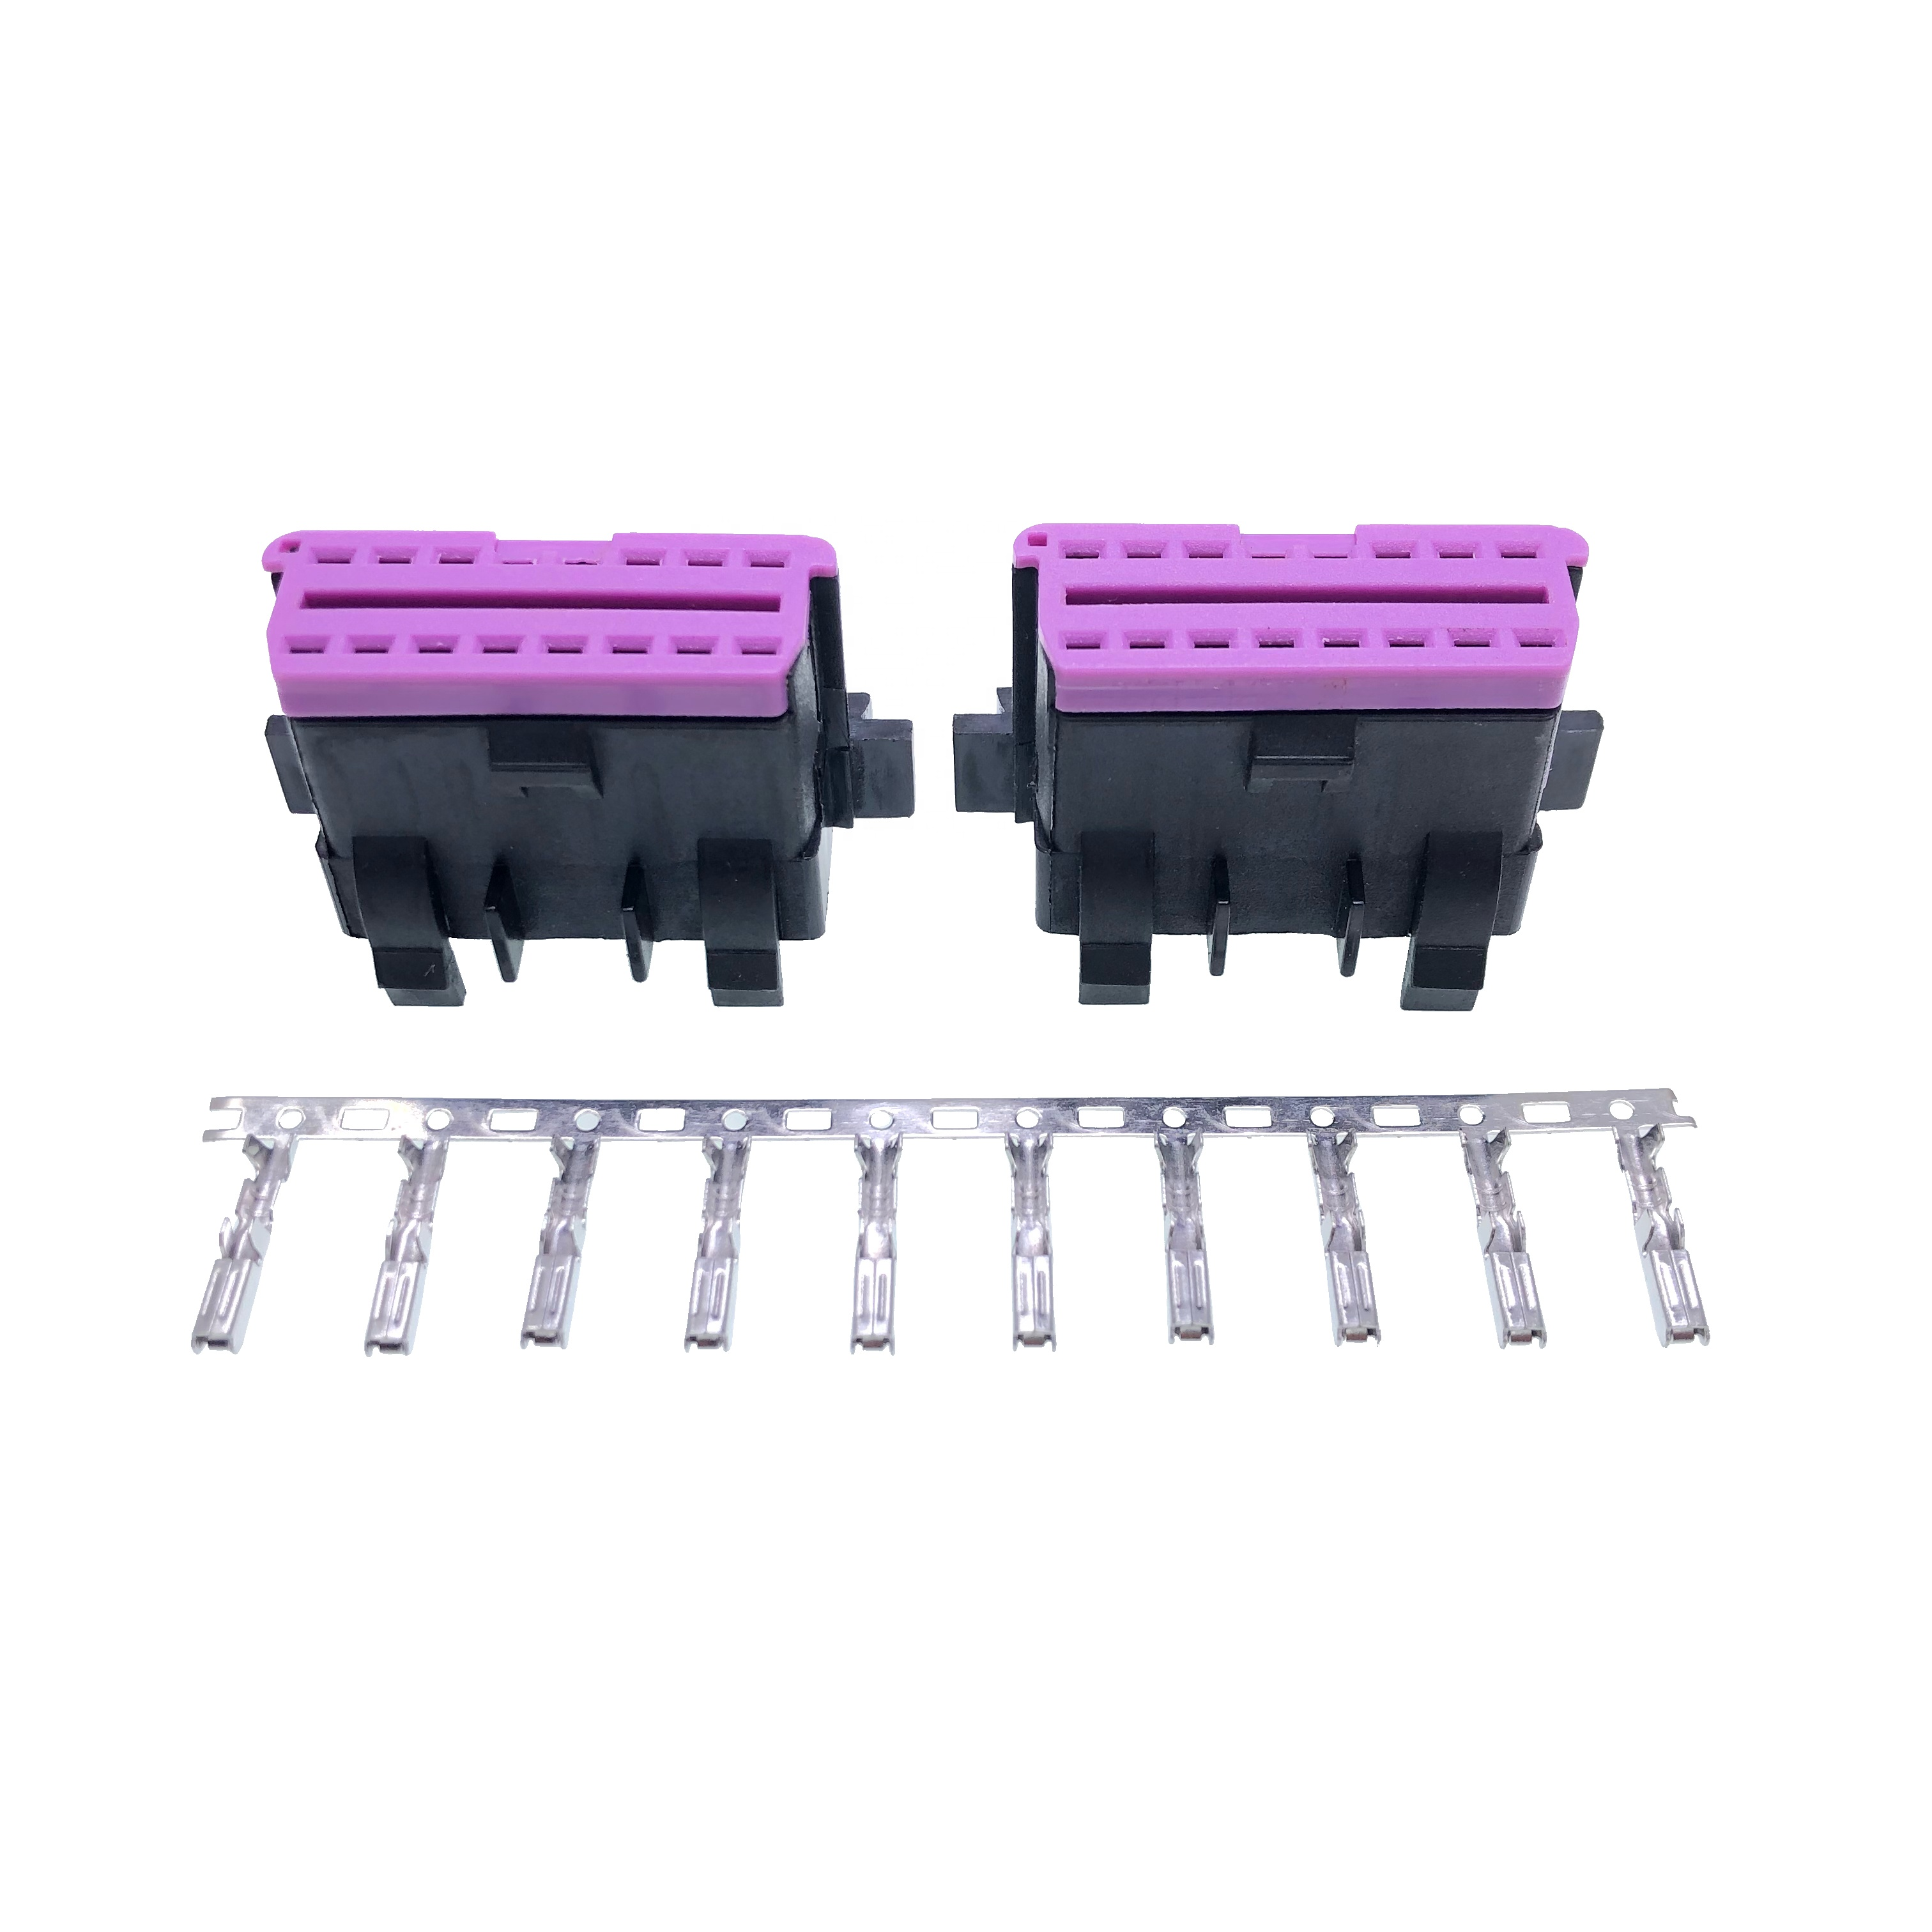 Obd40 Female Connector For Audi Obdii Vw Connector   Buy Vw Connector,Obd  Female Connector For Audi,Vw Product on Alibaba.com